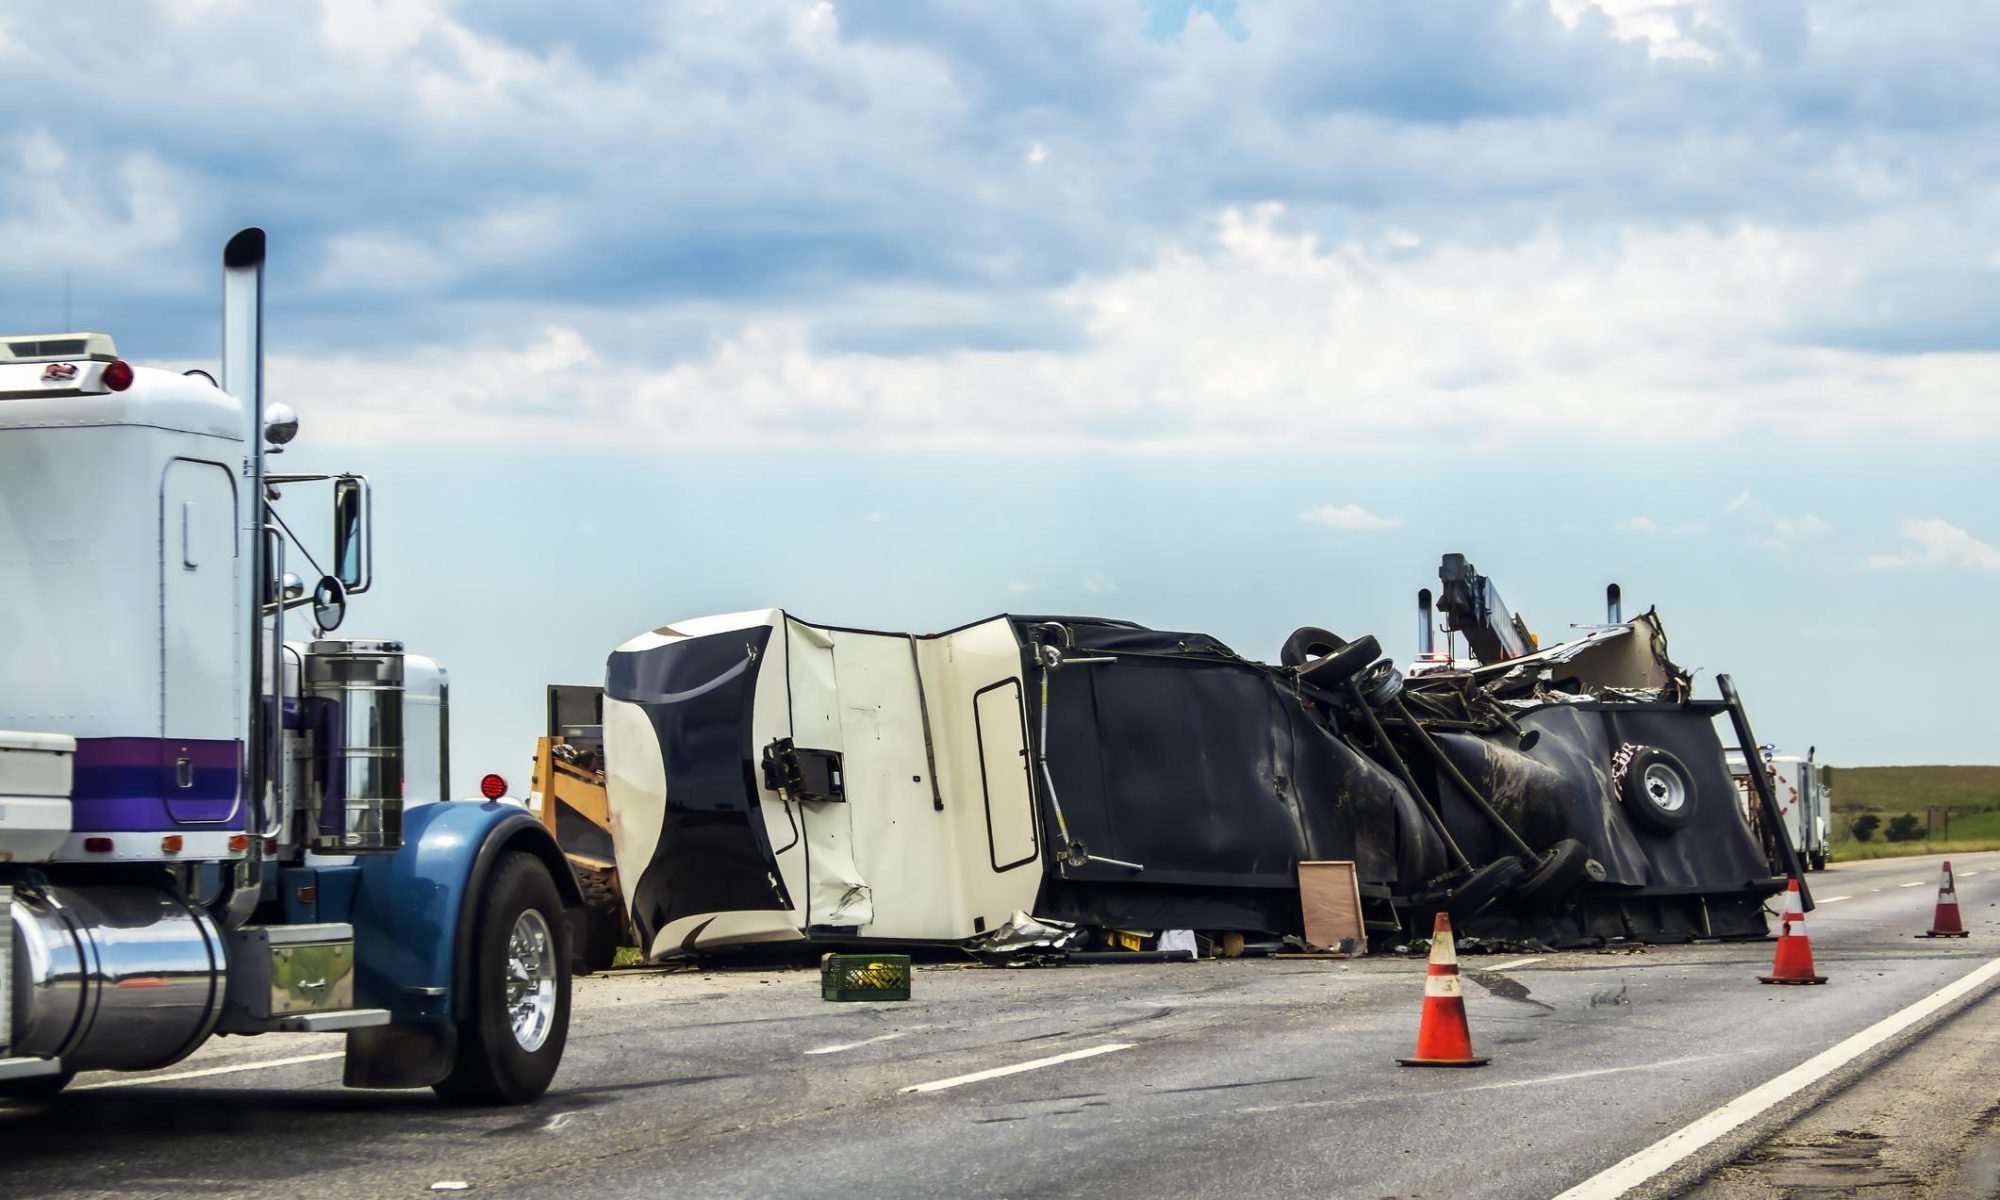 Crash Fatalities Involving Large Trucks On the Rise